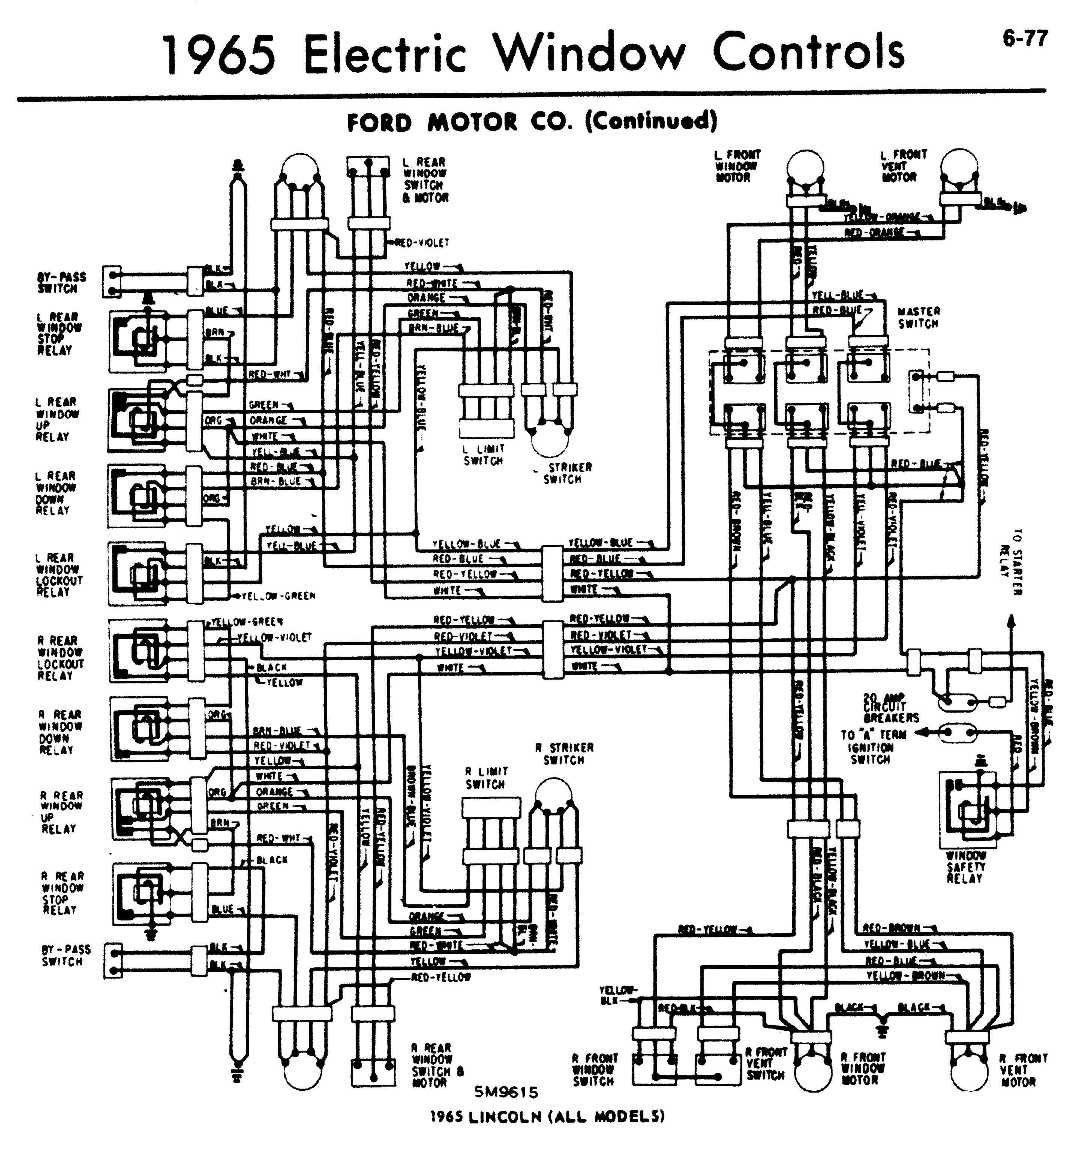 1965 Ford Thunderbird Wiring Diagram Power Window Complete 1966 1955 Rh Recored Co 1956